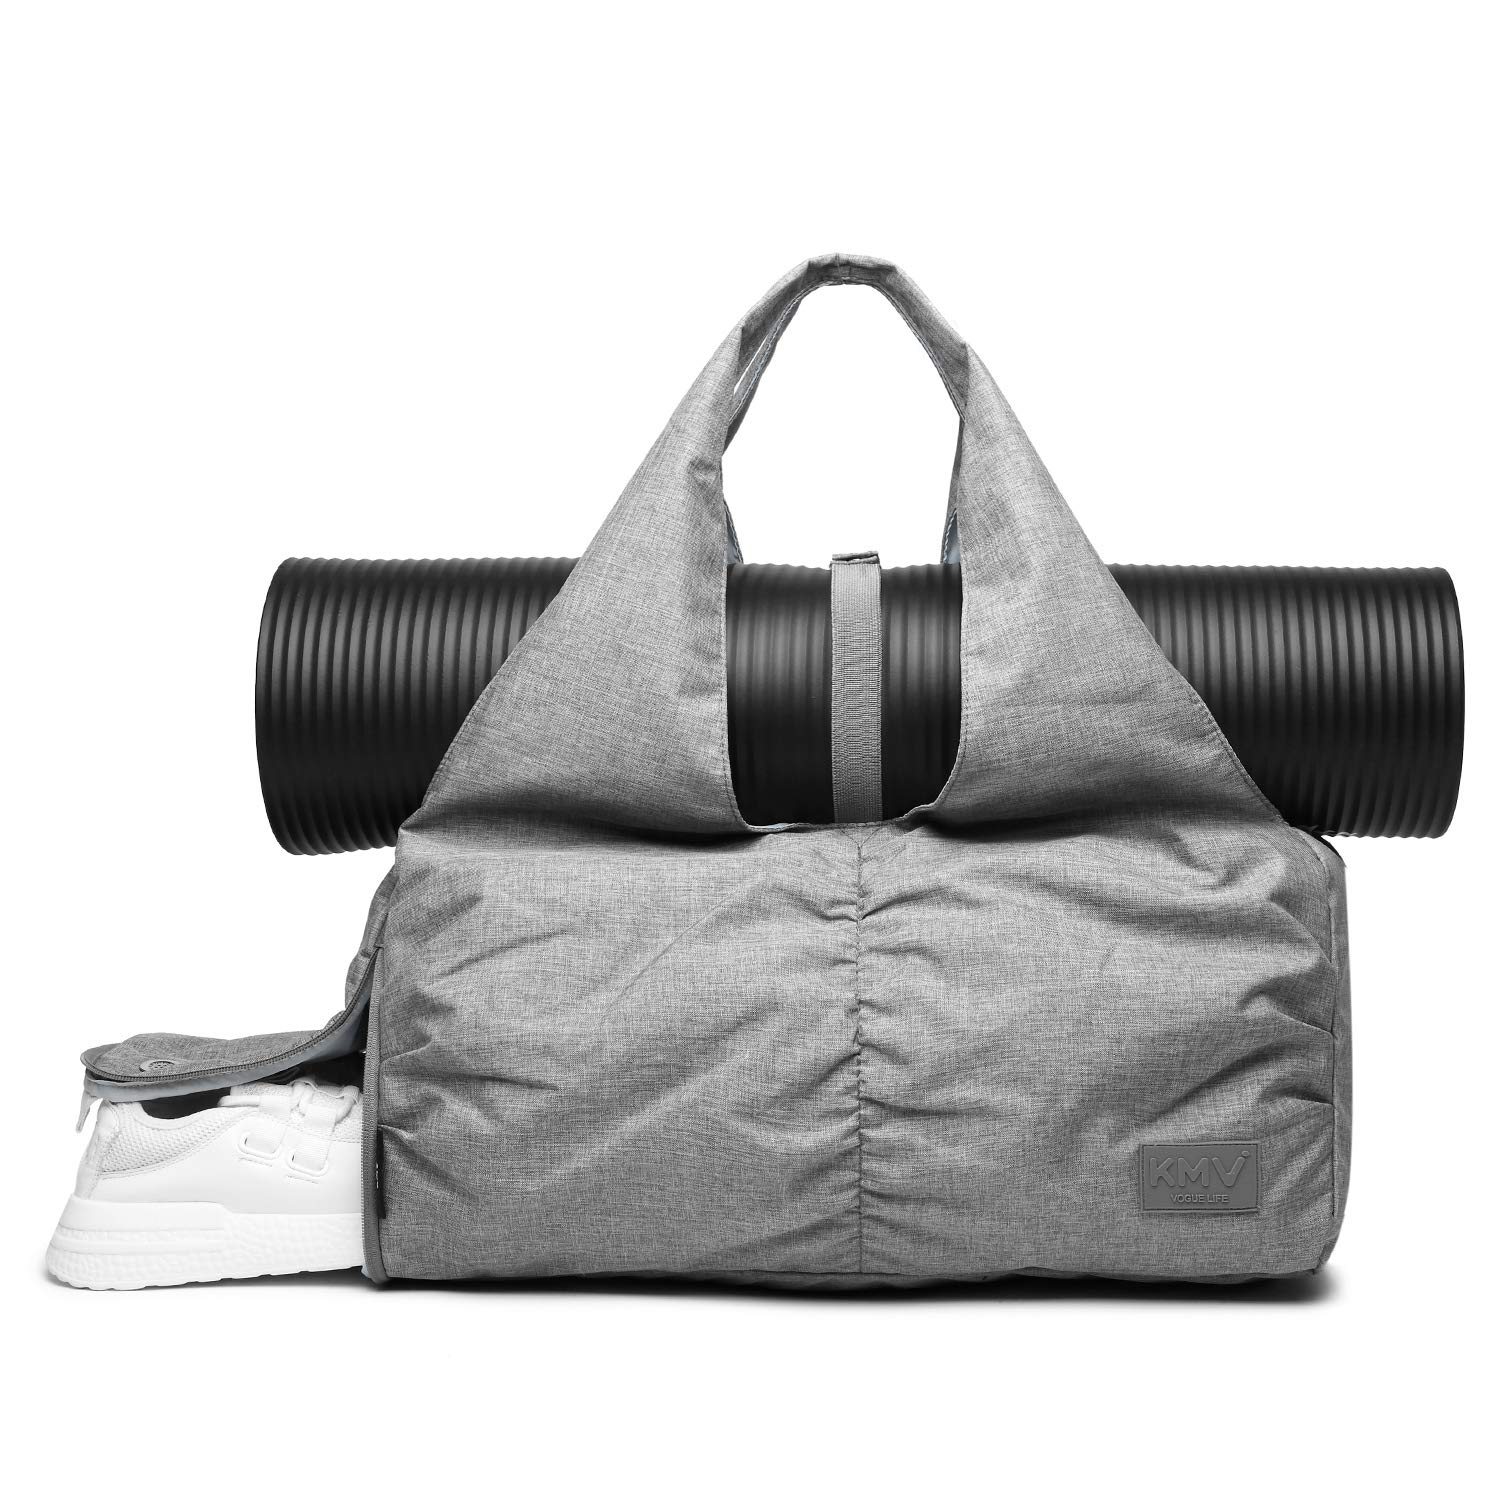 Y.U.M.C. Travel Yoga Gym Bag